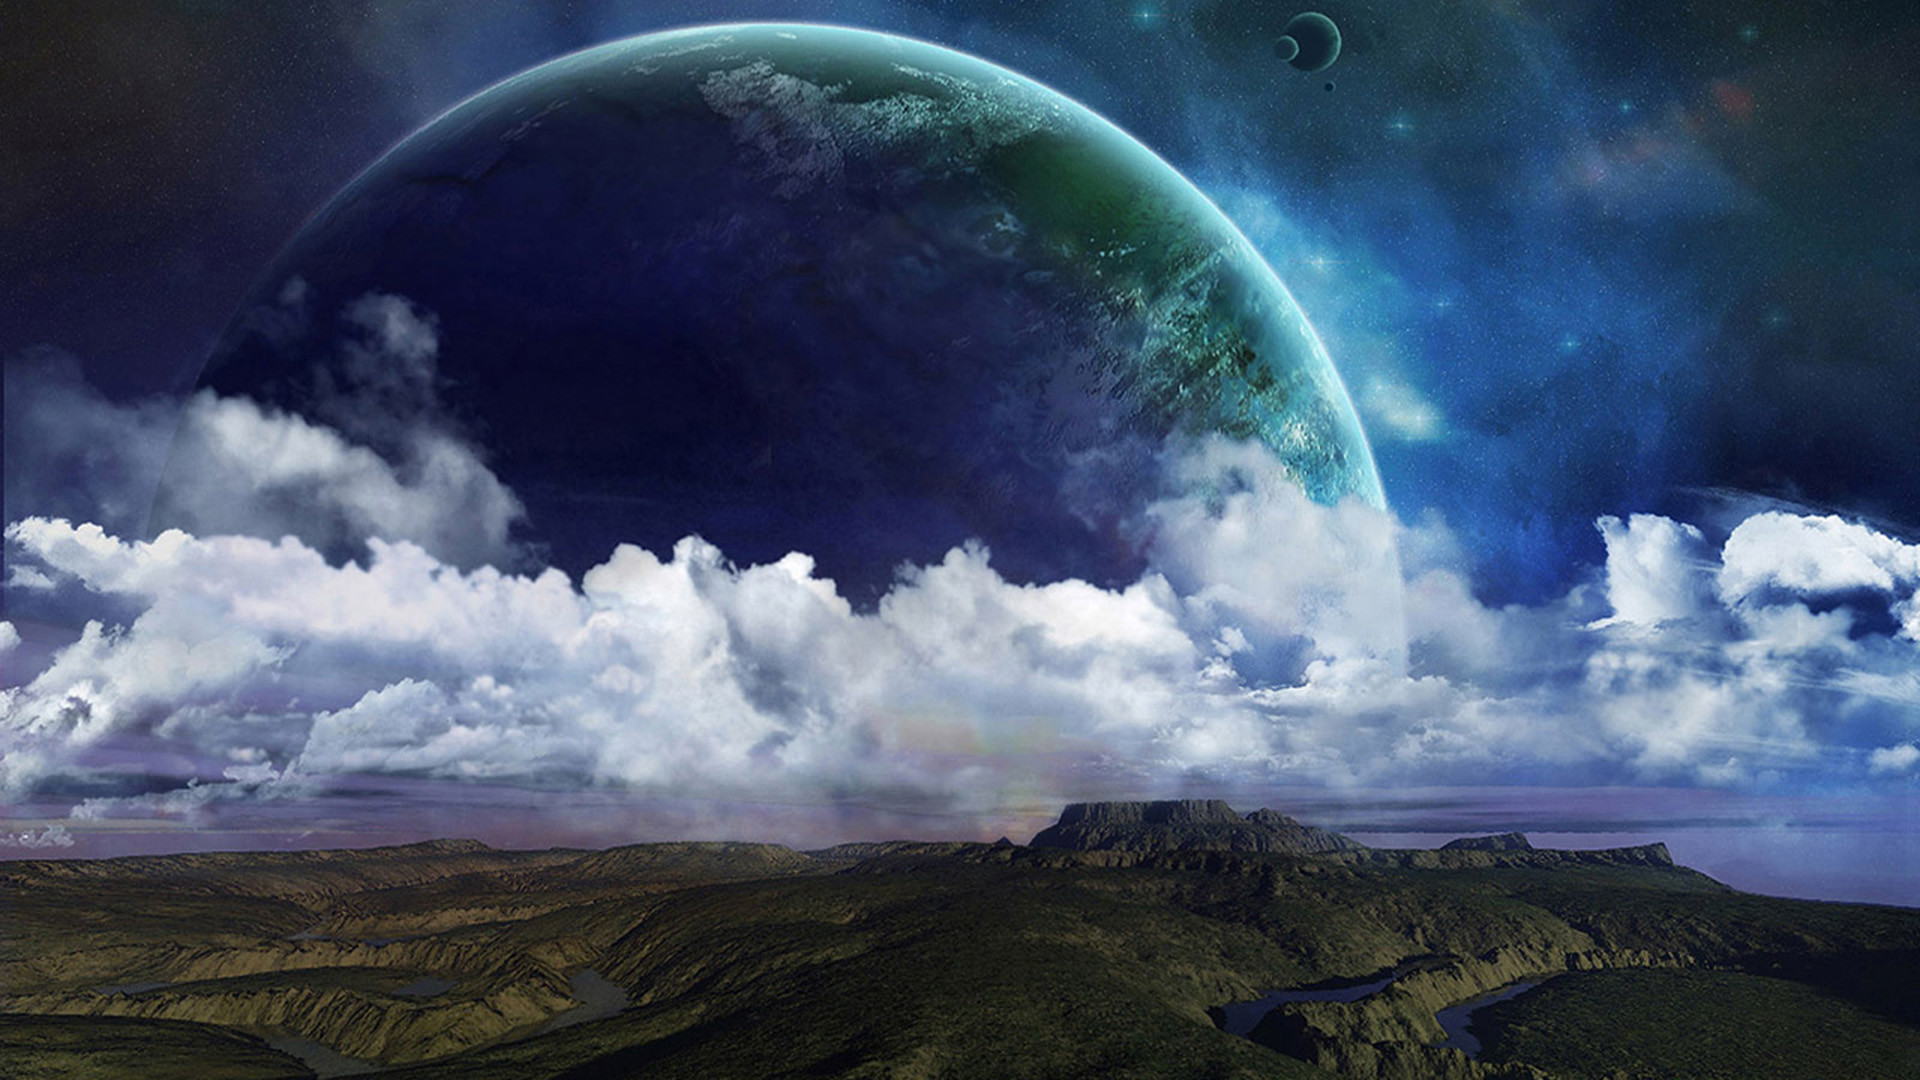 Fantasy Space Art | Free Desktop Wallpapers for Widescreen, HD and Mobile